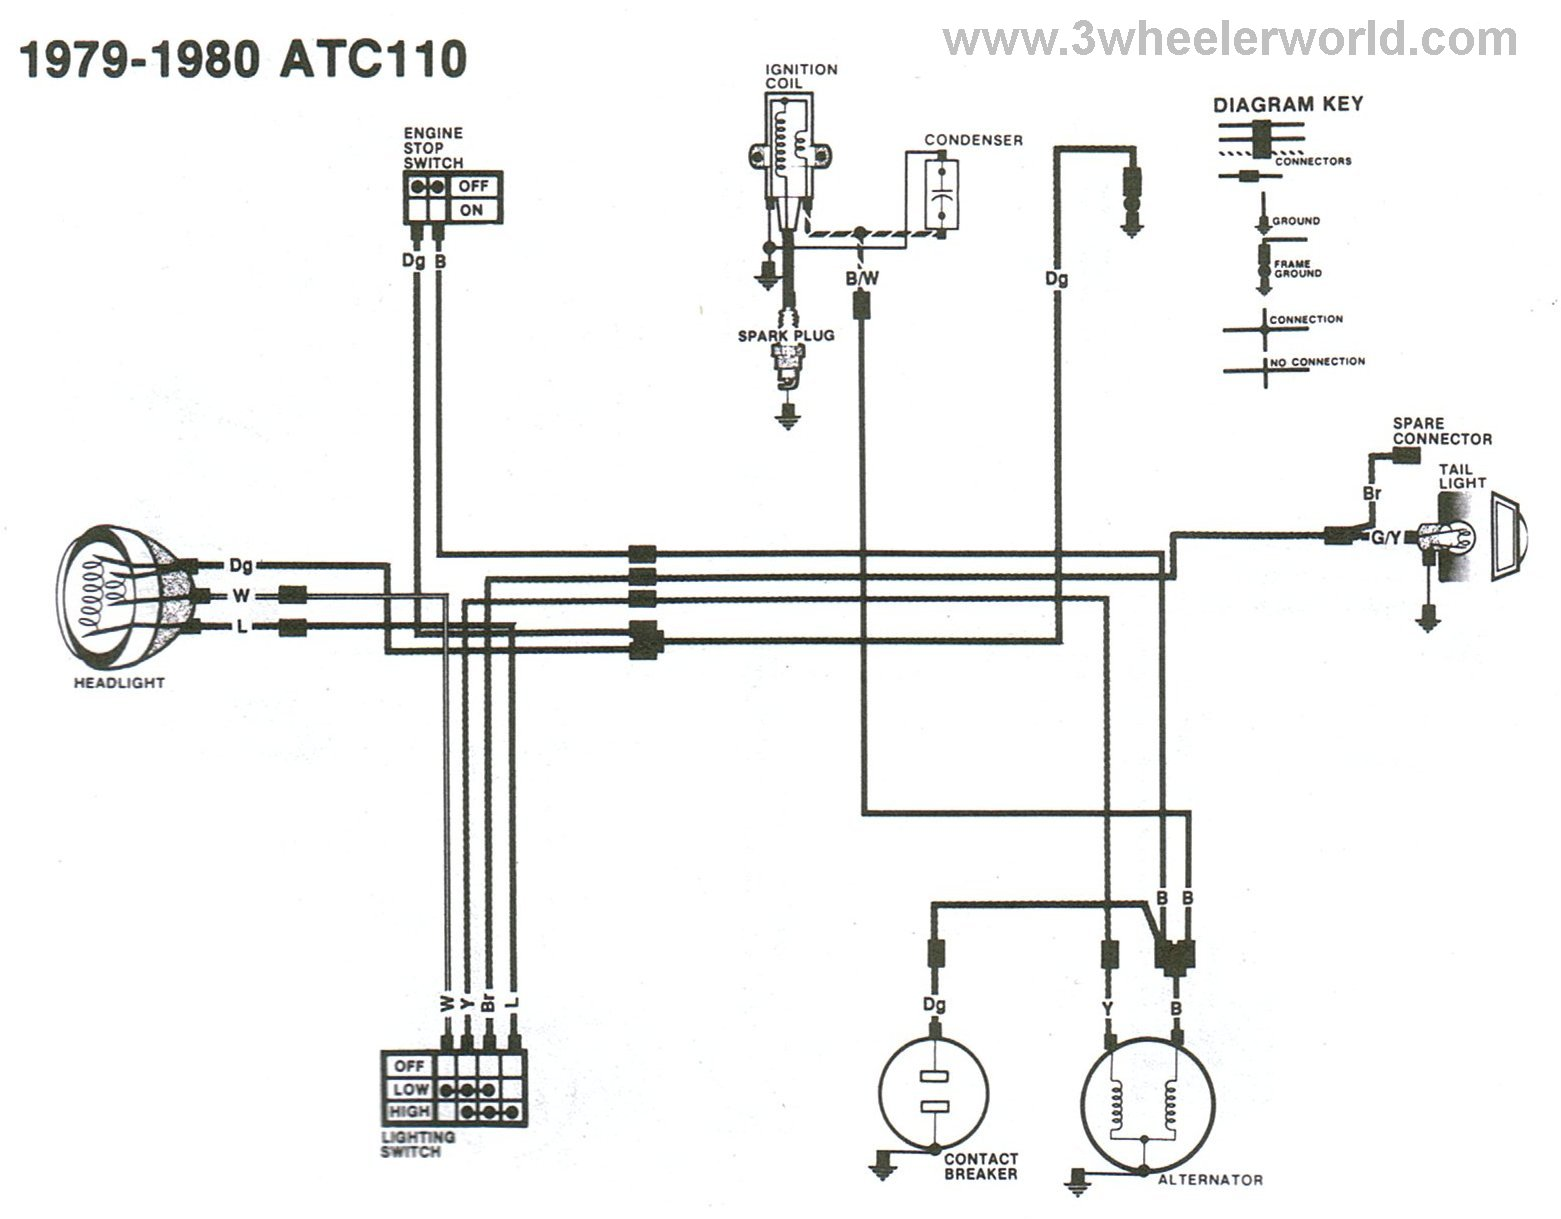 ATC110x79Thru80 www 3wheelerworld com oldsite files wiring atc110x 2005 honda 400ex wiring diagram at alyssarenee.co